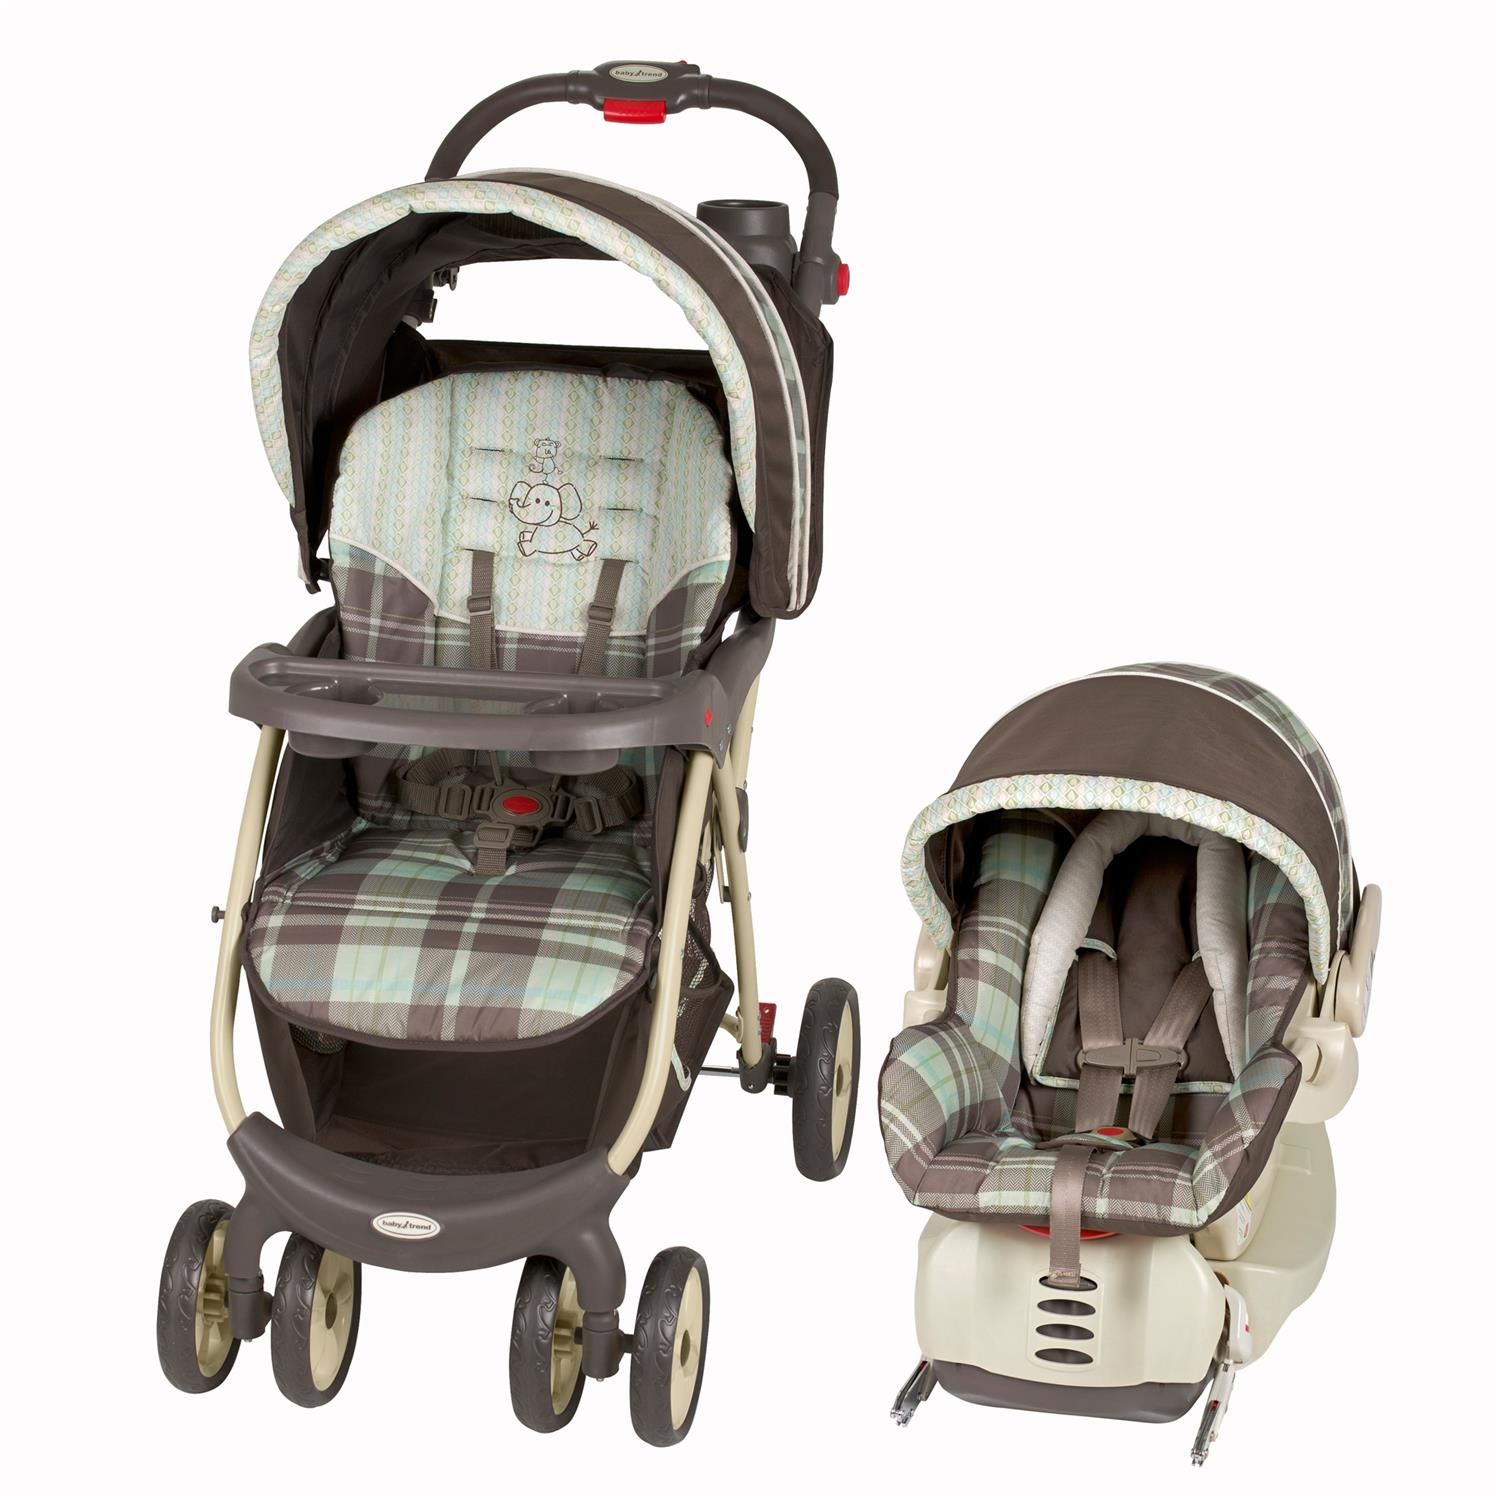 Baby Trend Envy 5 Travel System, Jungle Safari by Baby Trend